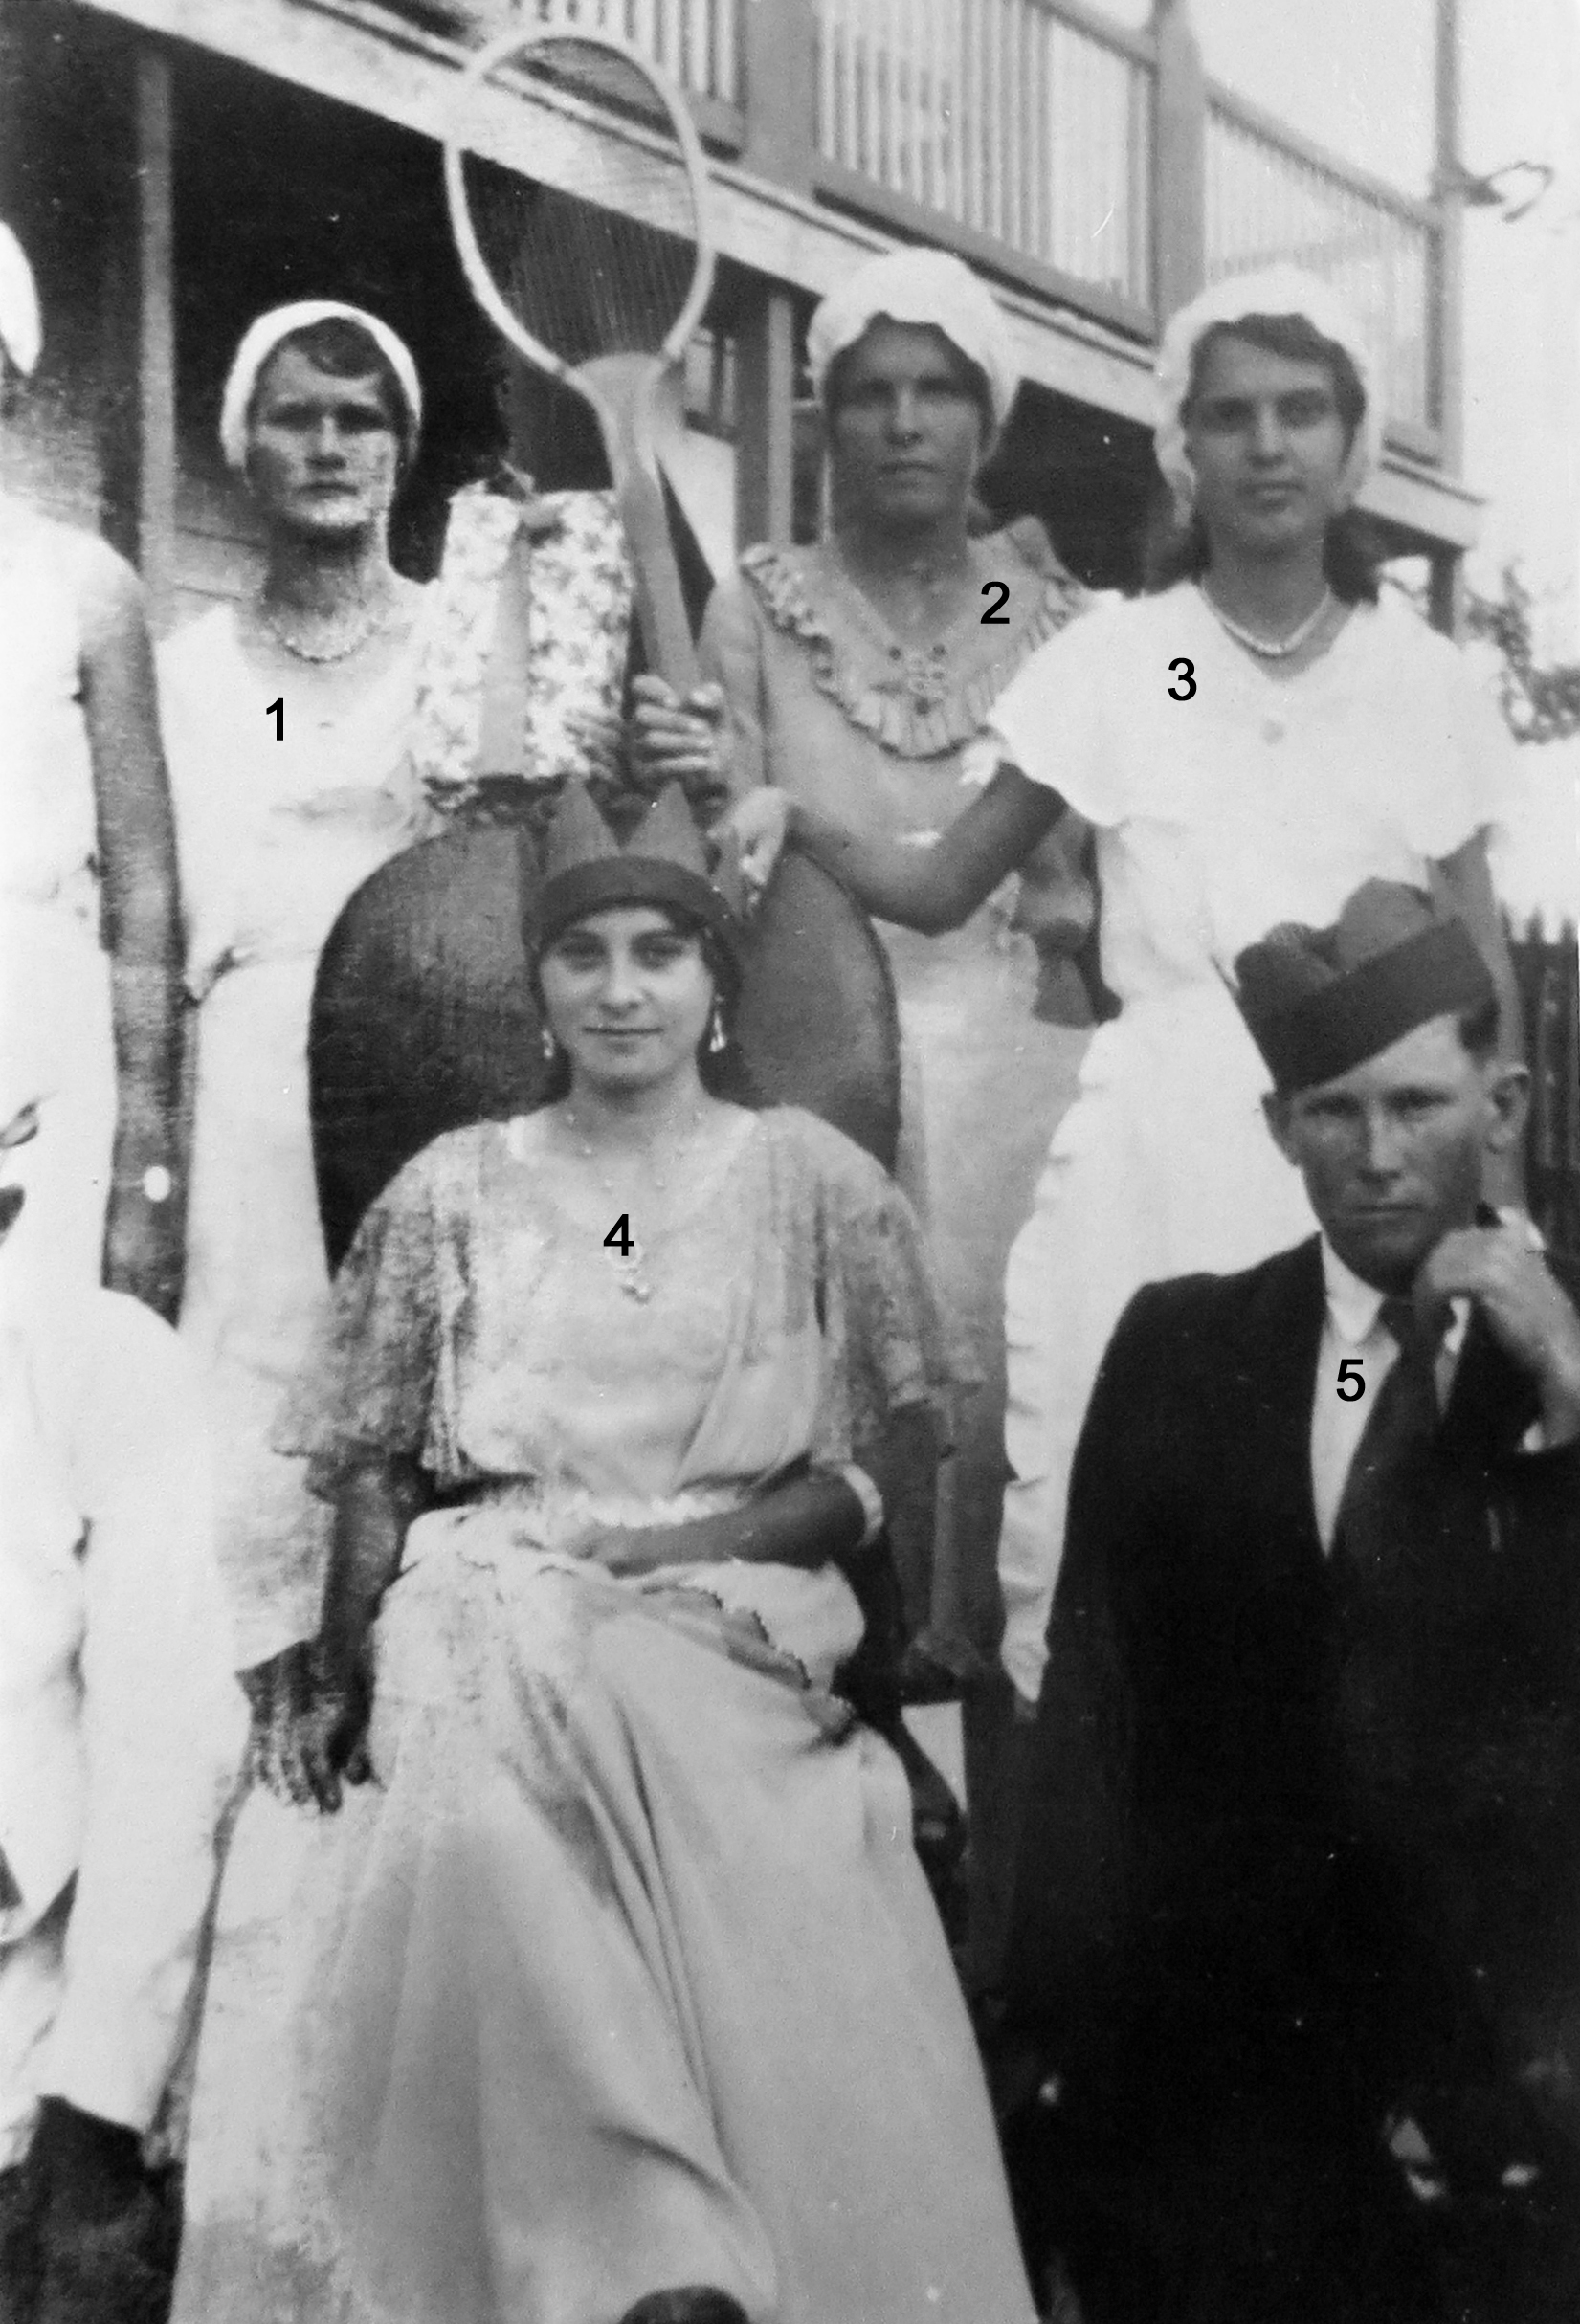 Can you help identify these people?